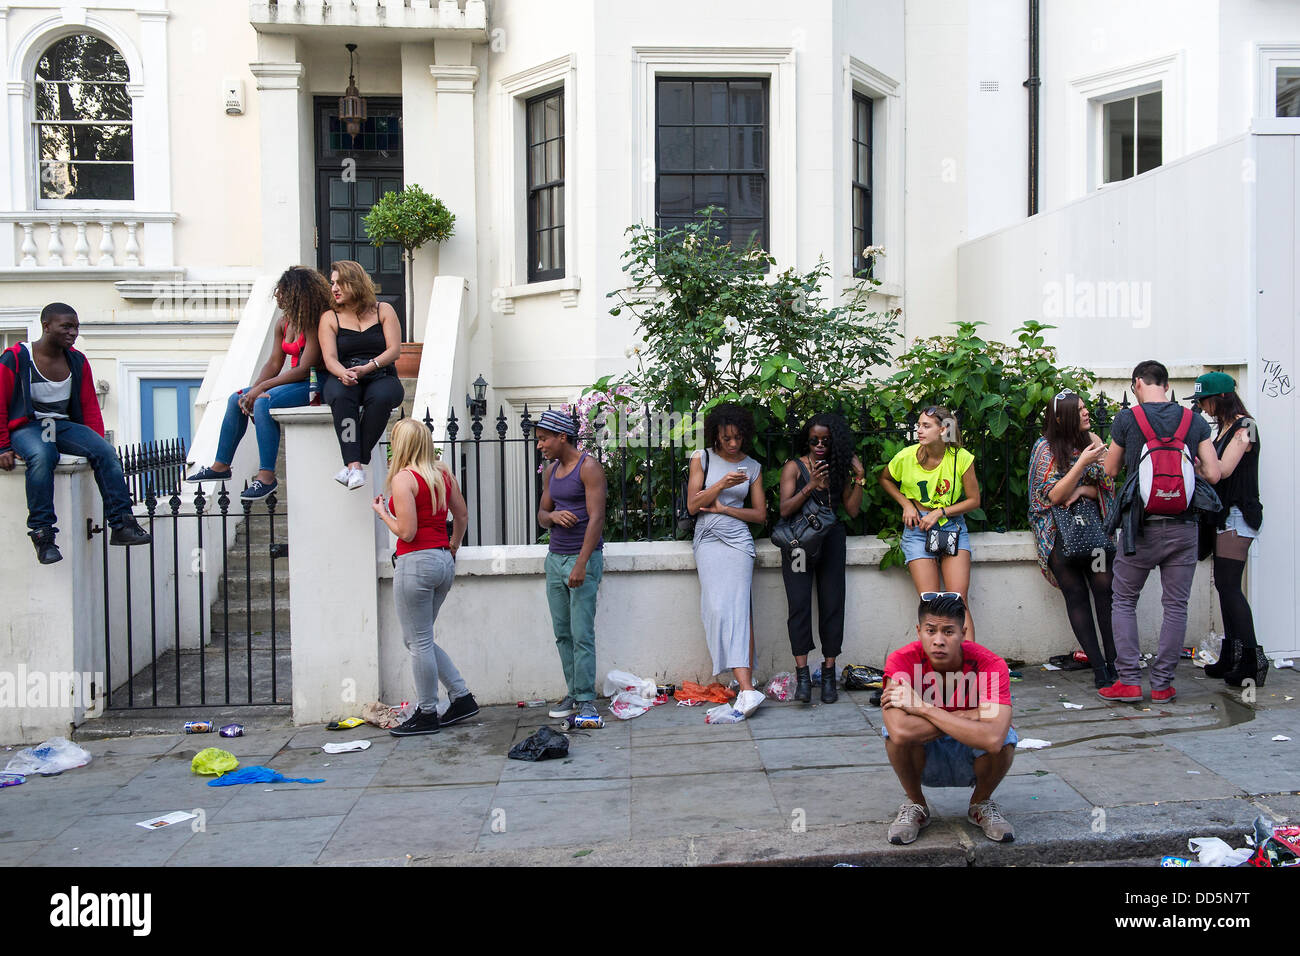 London, UK. 26th Aug, 2013. Notting Hill Carnival, London, UK,  26 August 2013. Credit:  Guy Bell/Alamy Live News Stock Photo